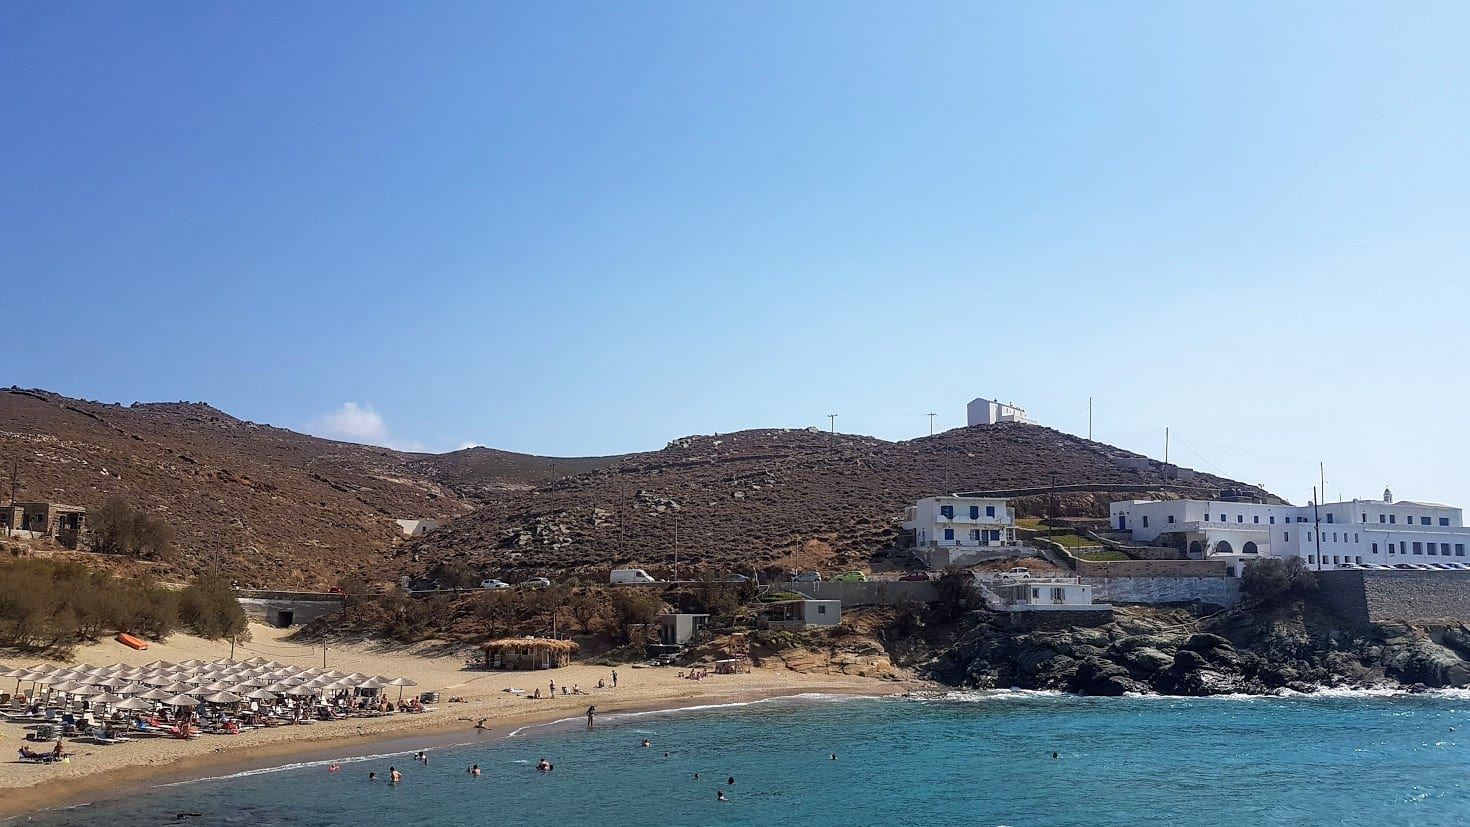 Swimming at a beach in Tinos Greece